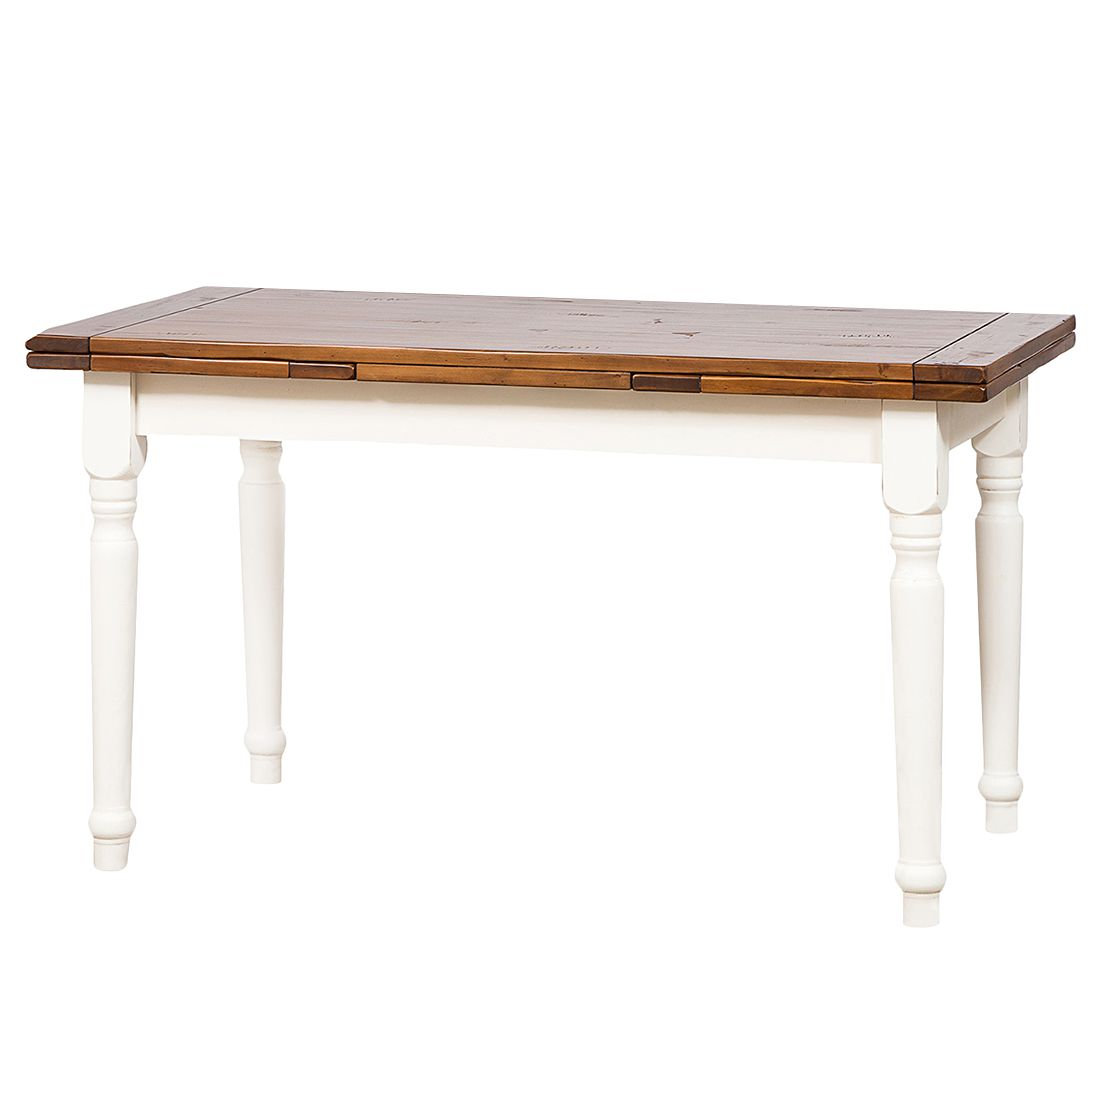 Table manger massello ii extractible tilleul massif for Table a manger 160 cm avec rallonge